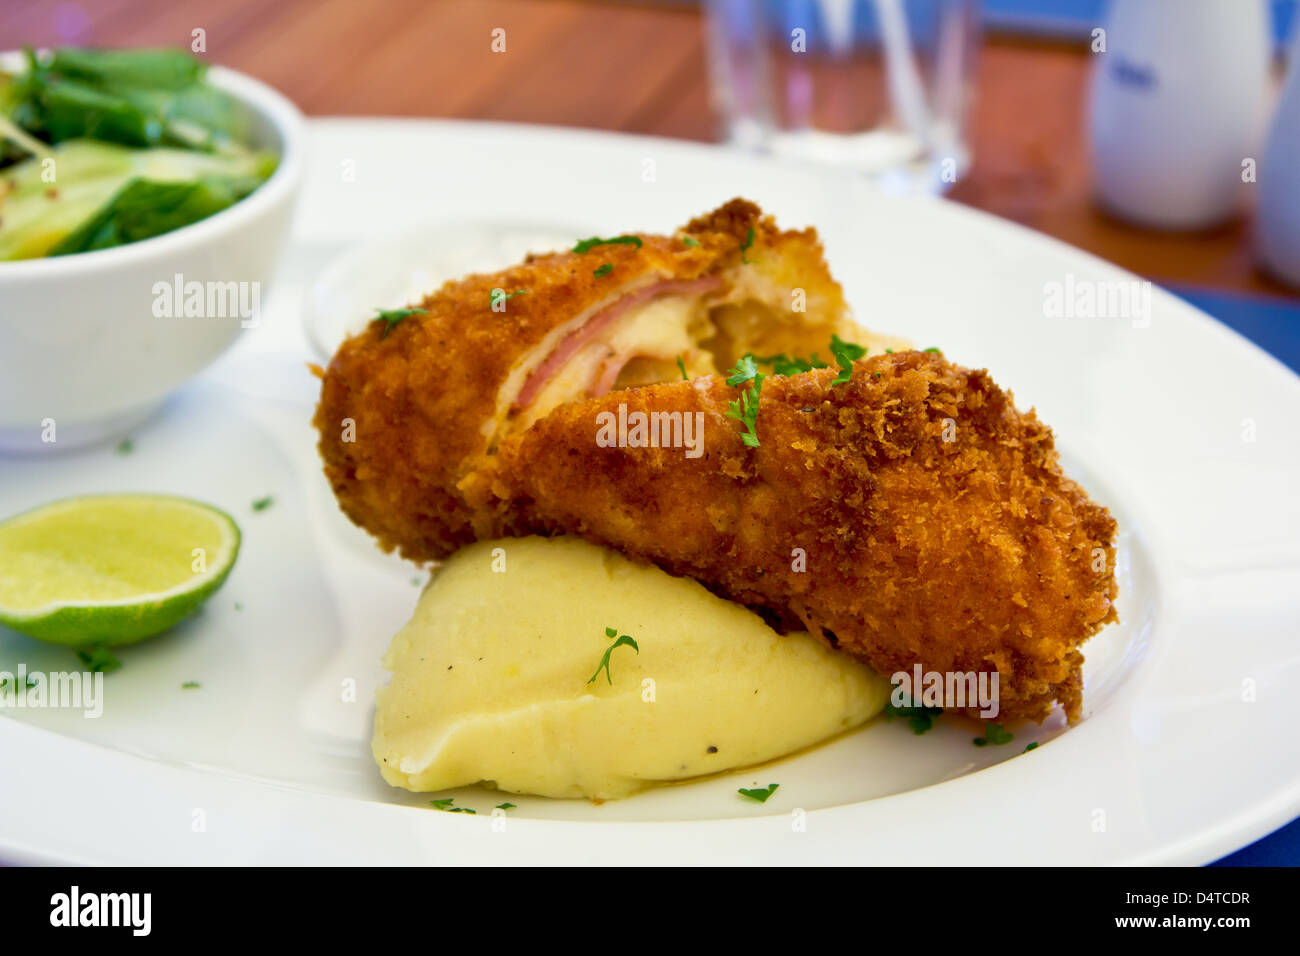 Chicken Cordon bleu with mash potato and salad - Stock Image